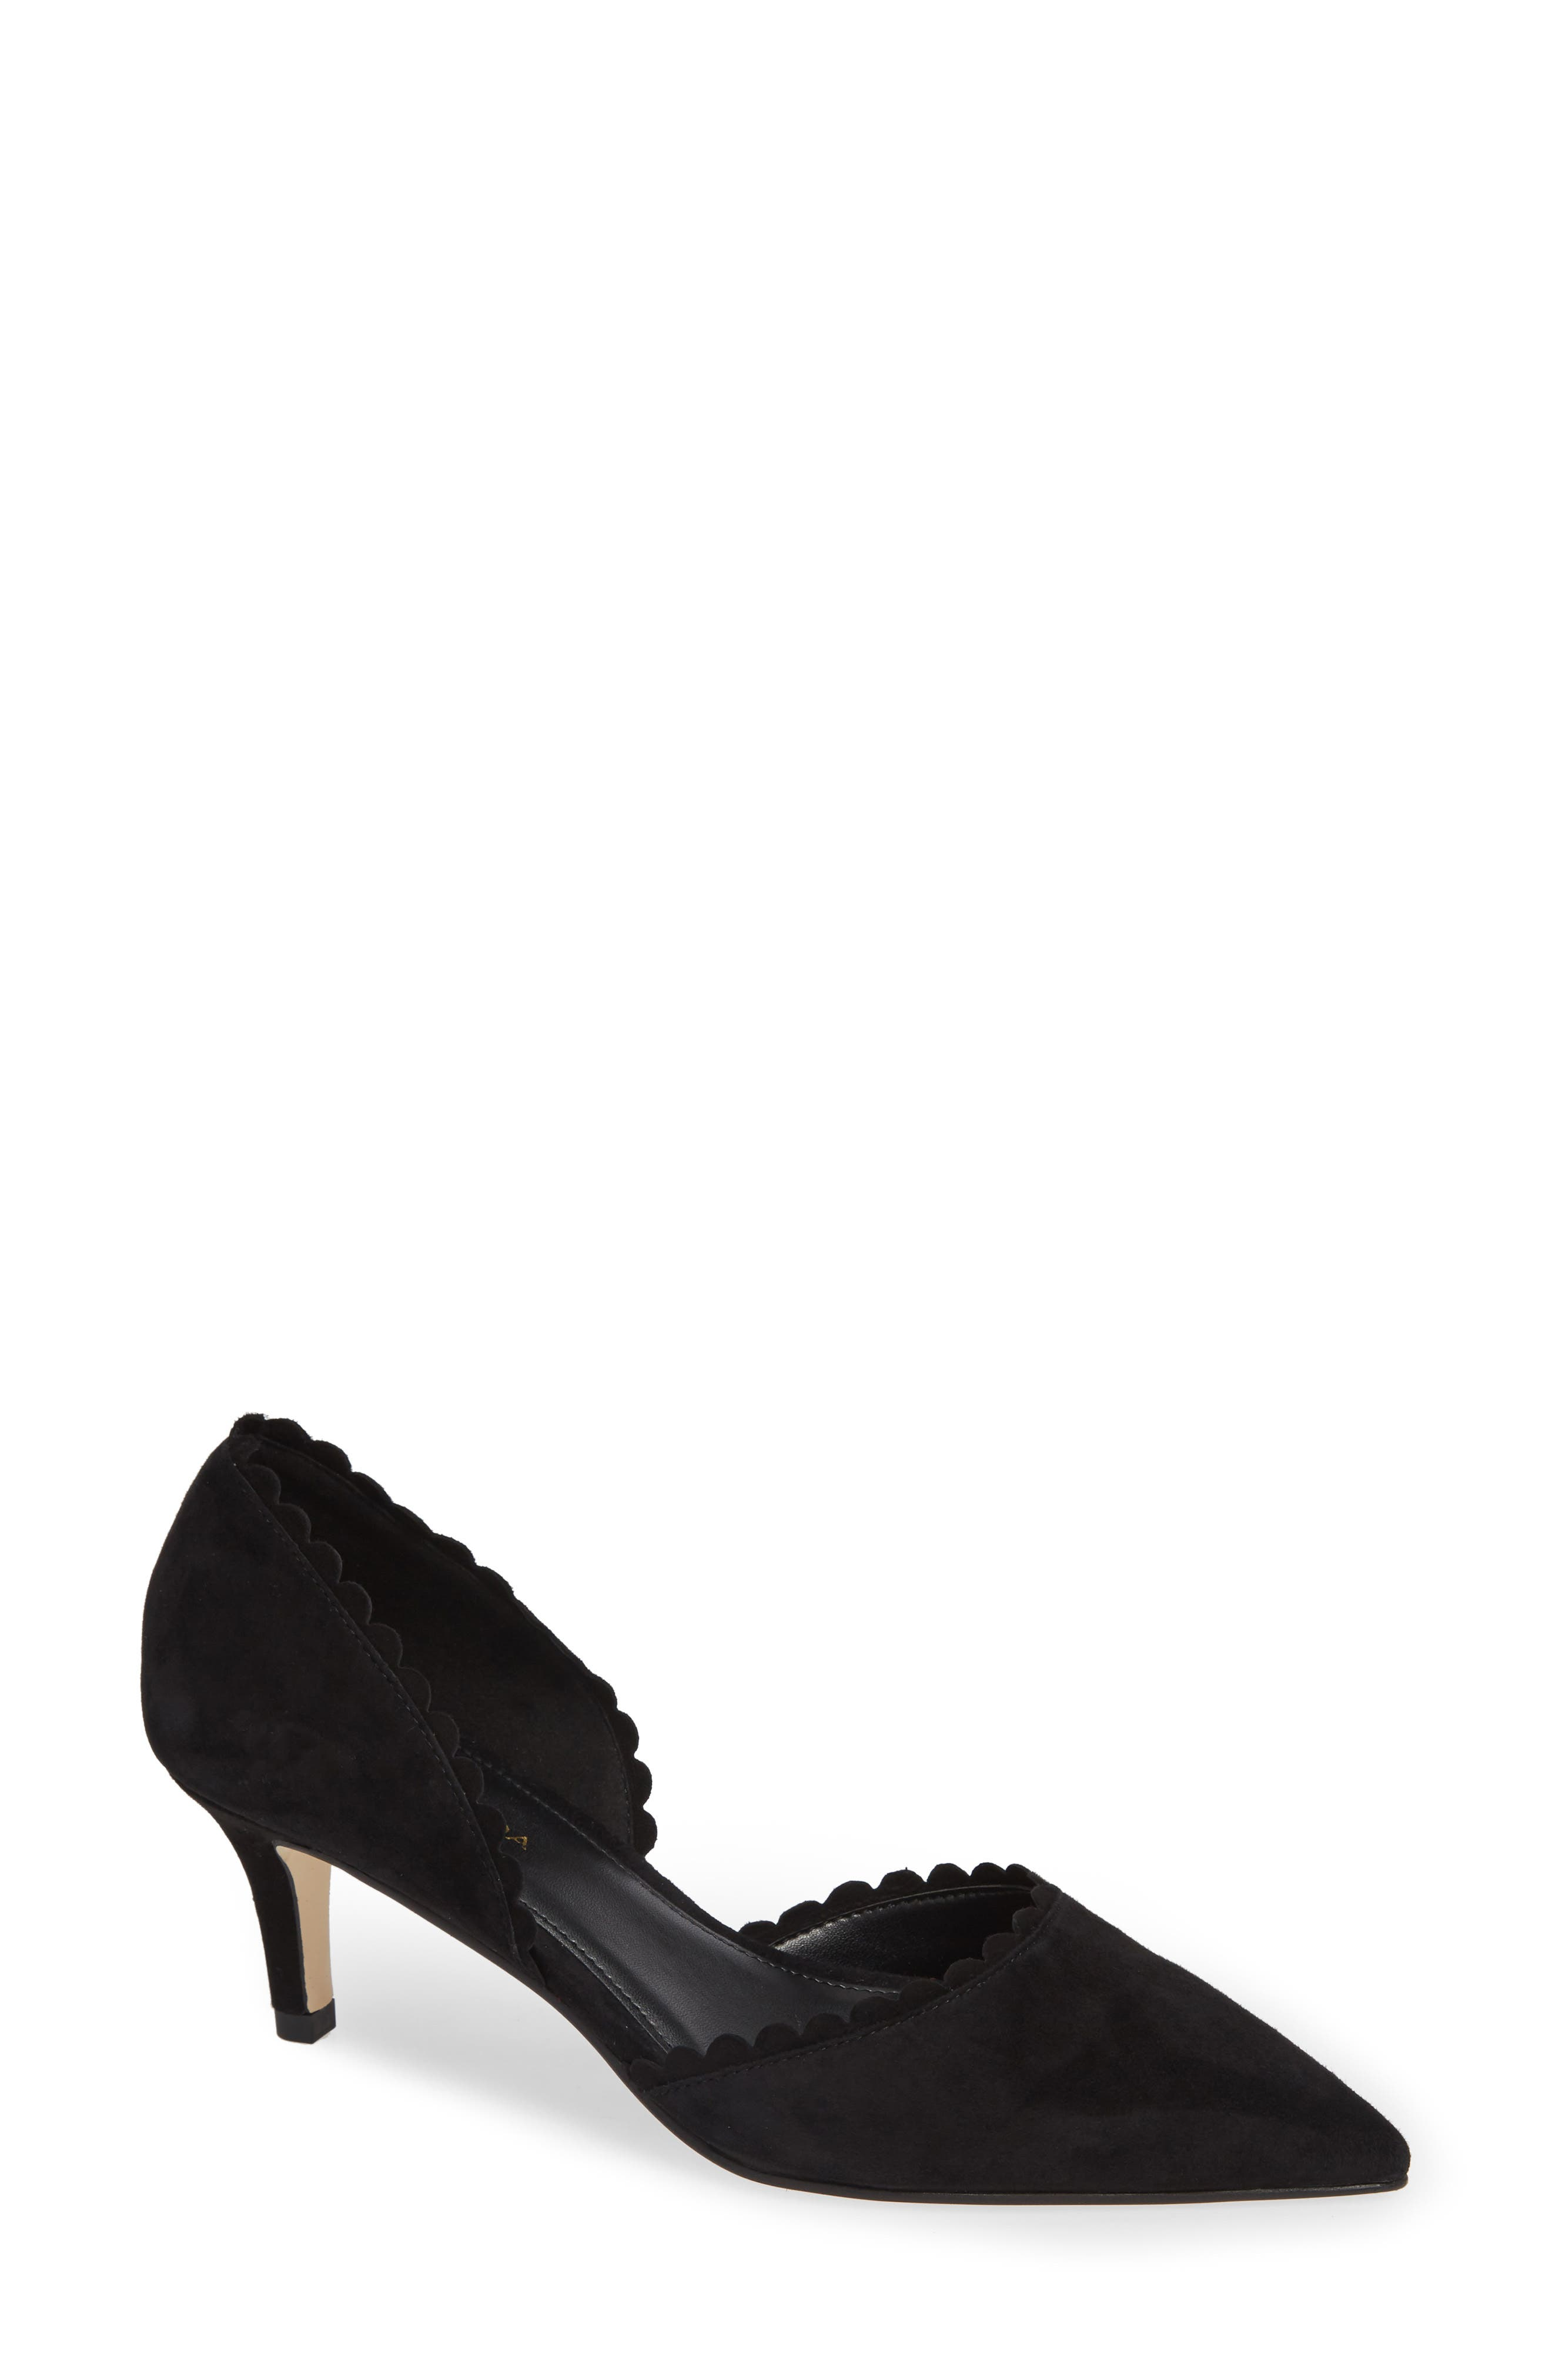 Dainty scalloped edges trim the topline of a work-to-weekend d\\\'Orsay pump gently lifted by a kitten heel. Style Name: Pelle Moda Kenny D\\\'Orsay Pump (Women). Style Number: 5639287. Available in stores.